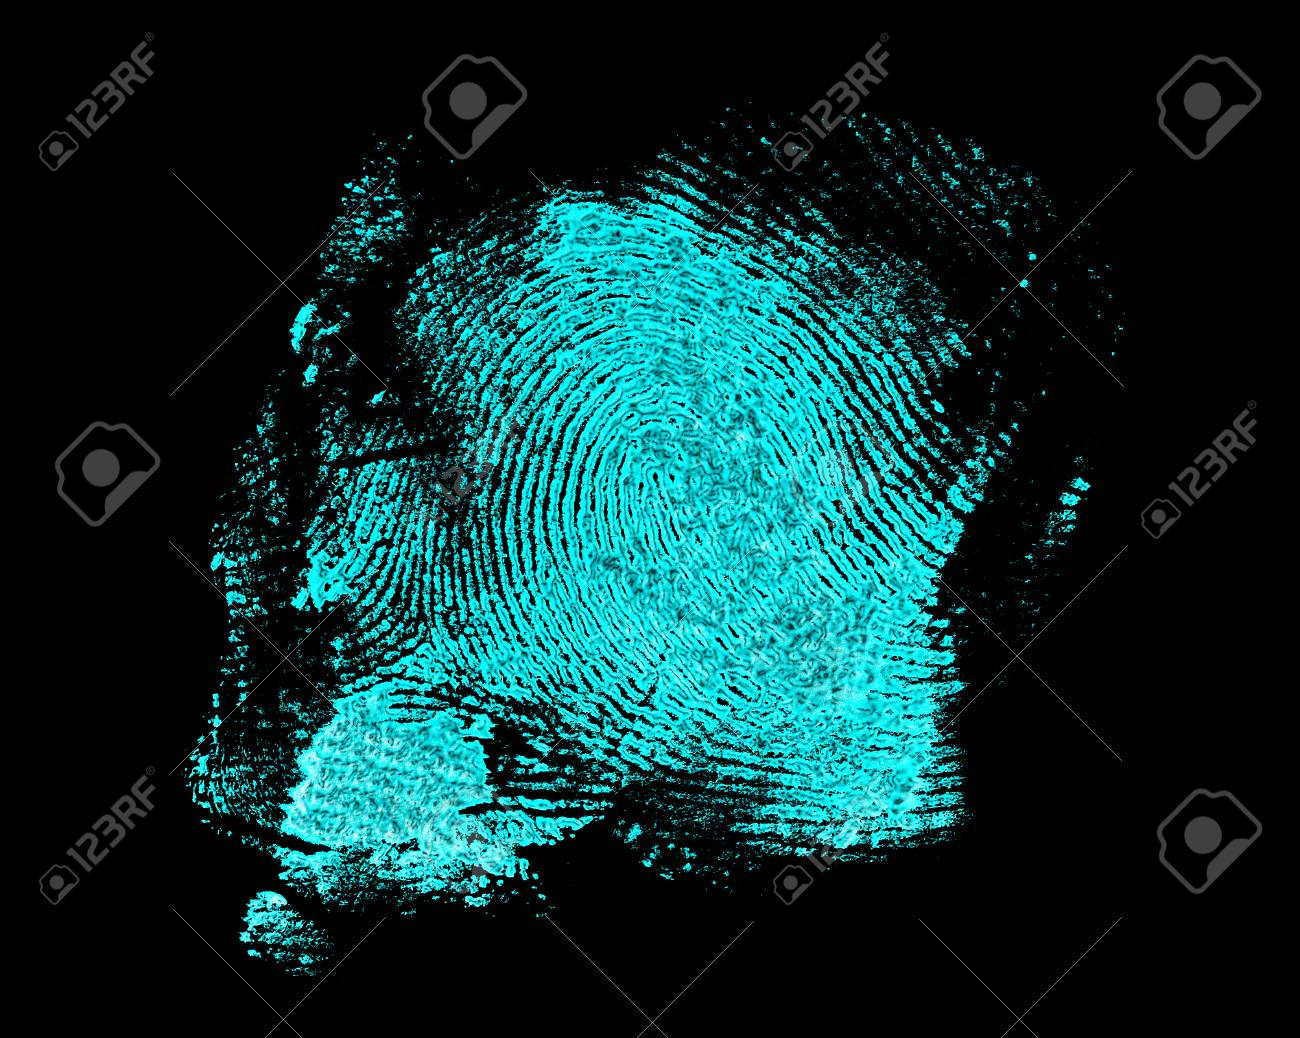 Ultraviolet Lamp Fingerprint On Black Background Fingerprint With Ultraviolet